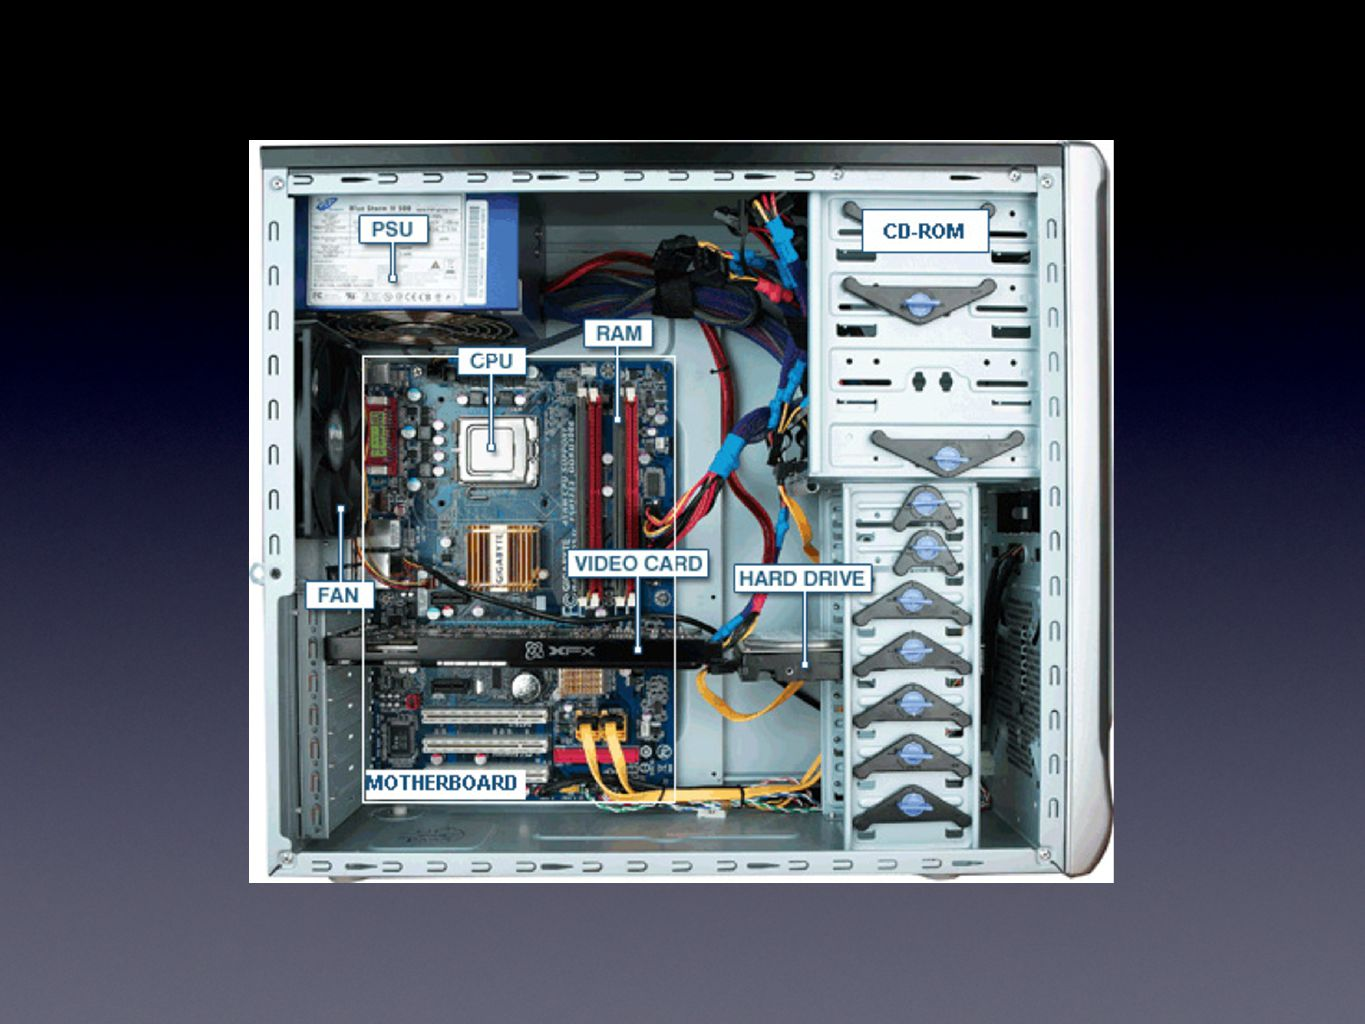 Pins are used on the bottom of the CPU to connect to the motherboard A heat sink and fan must be placed on top of the motherboard to prevent overheating